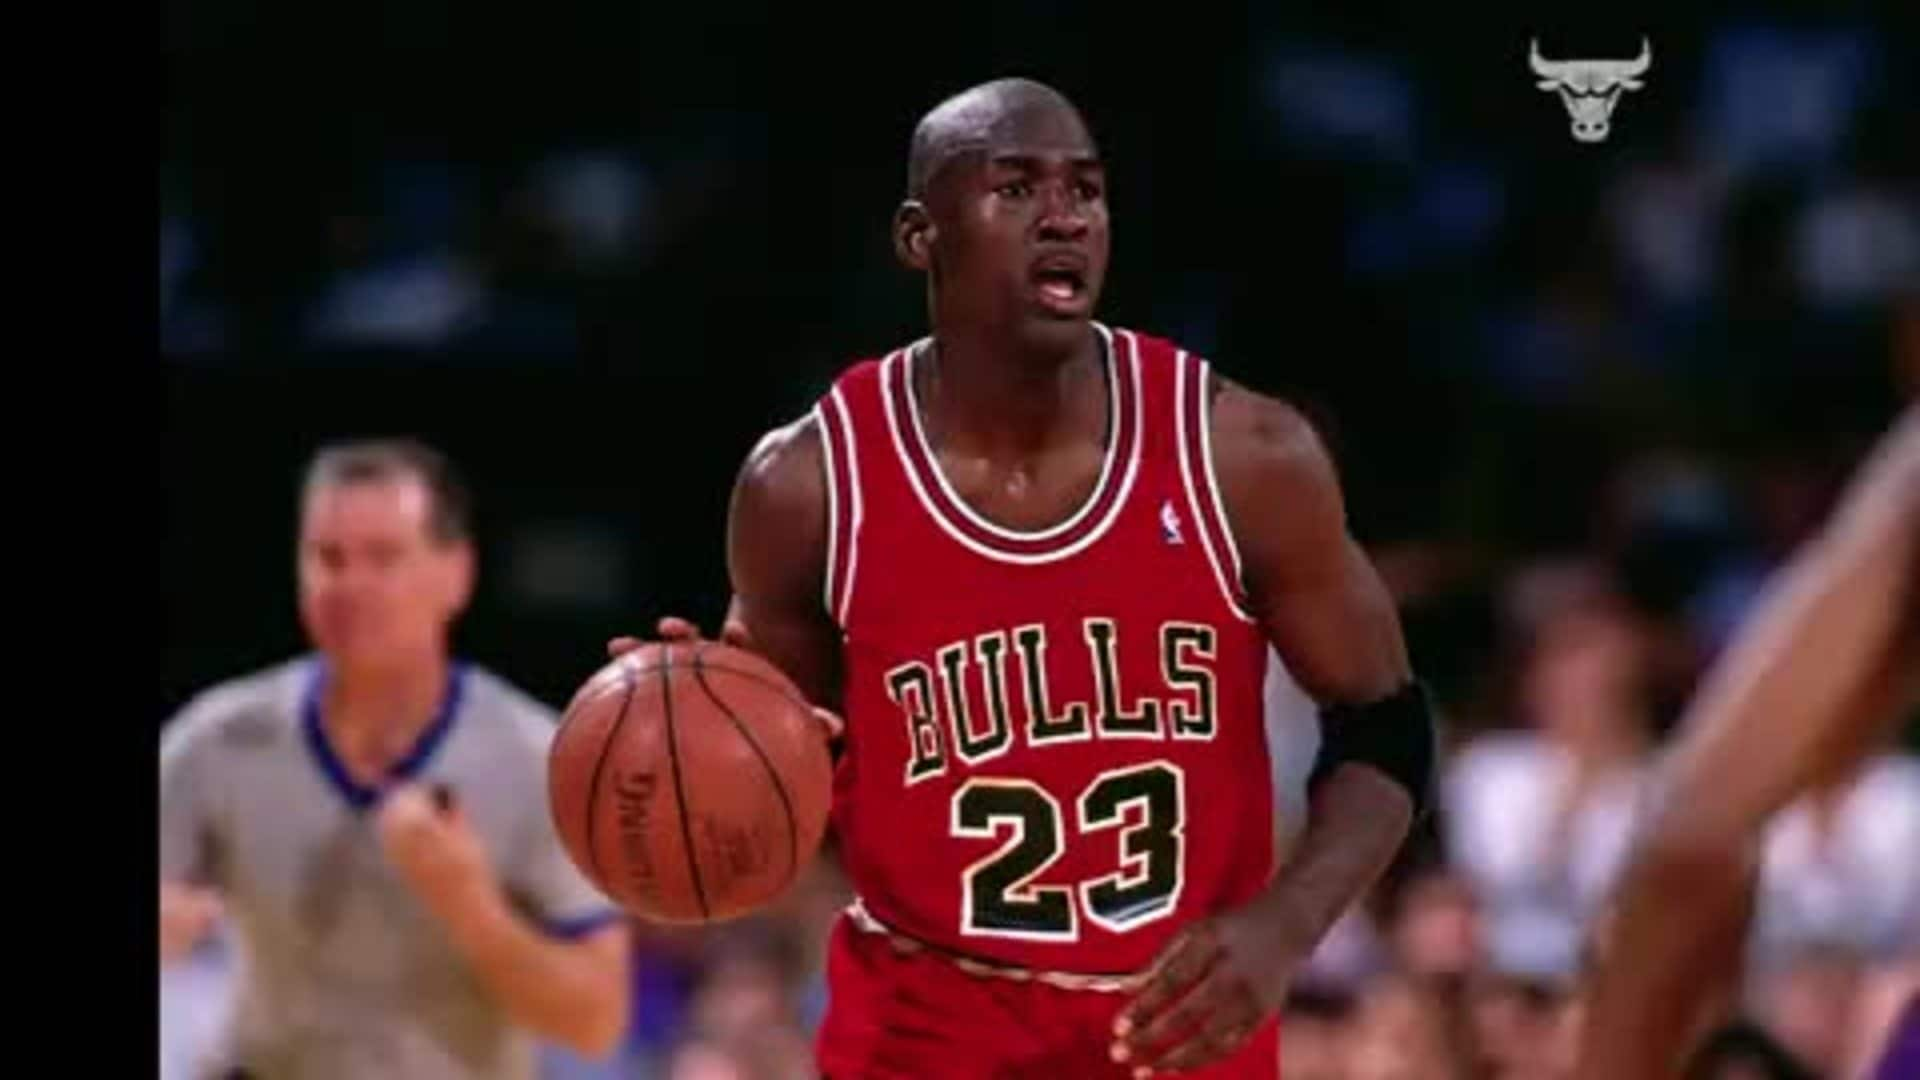 Bulls sweep the Pistons in the 1991 Eastern Conference Finals